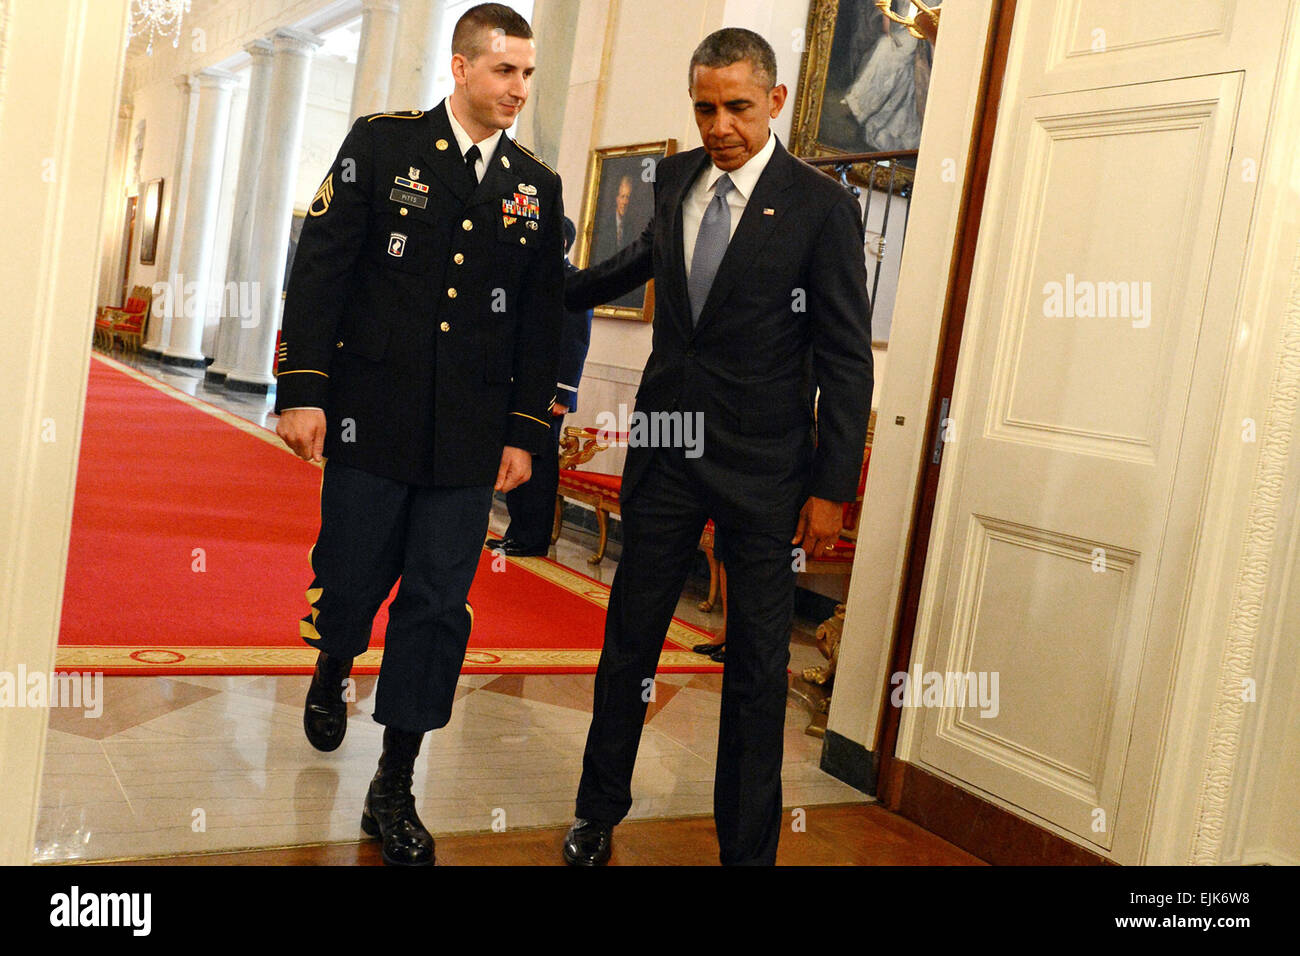 President Barack Obama and former U.S. Army Staff Sgt. Ryan M. Pitts enter the East Room of the White House for - Stock Image